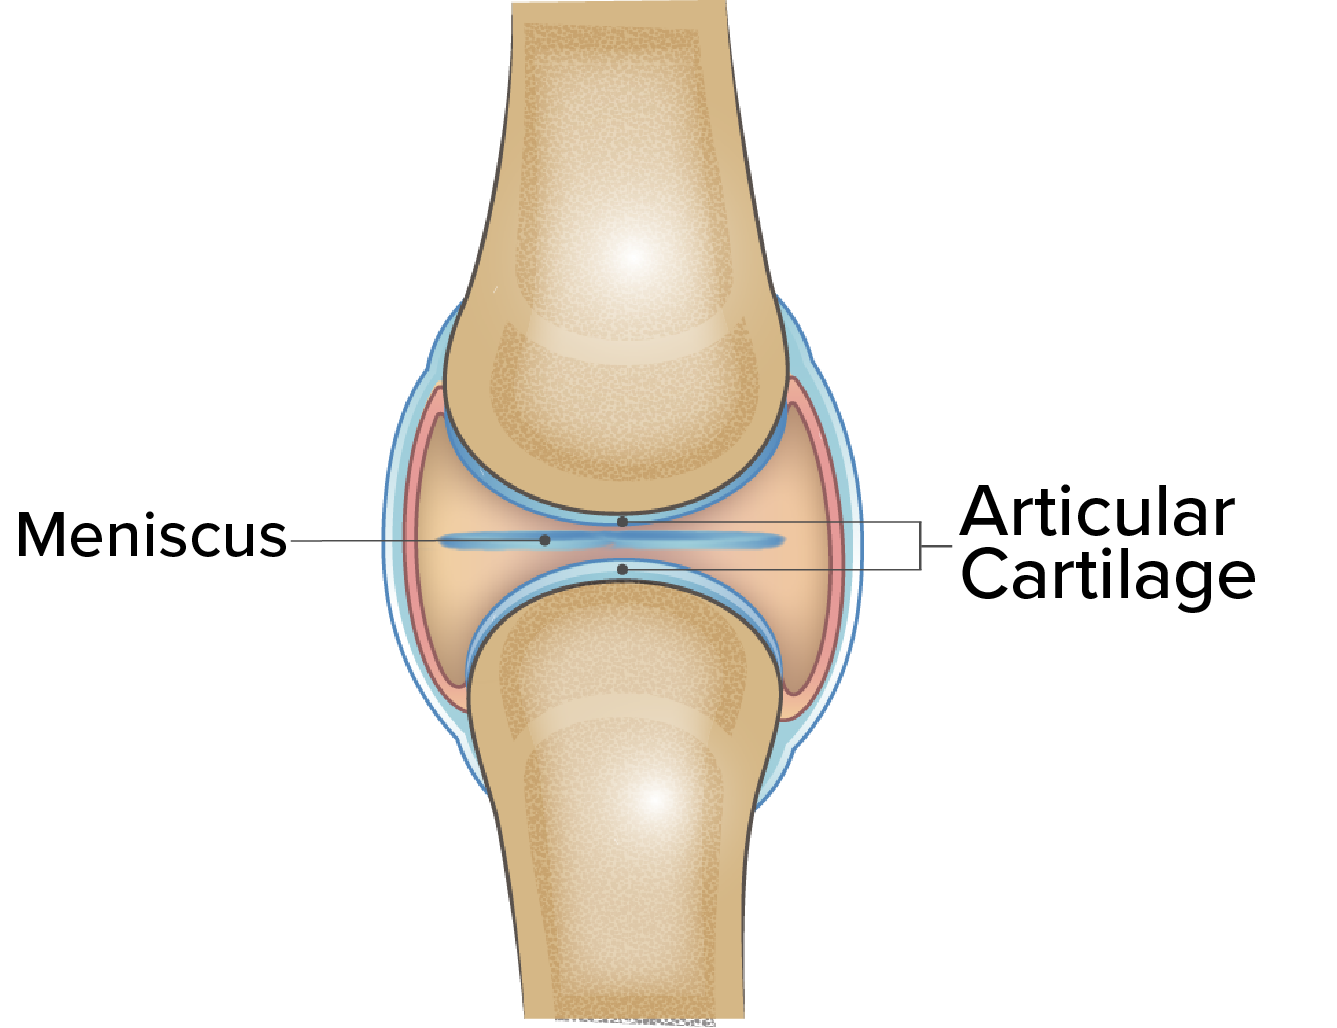 64548cad64 Inside a healthy knee, between the bones, there is soft spongy tissue  called cartilage. Cartilage comes in two types hyaline and articular.